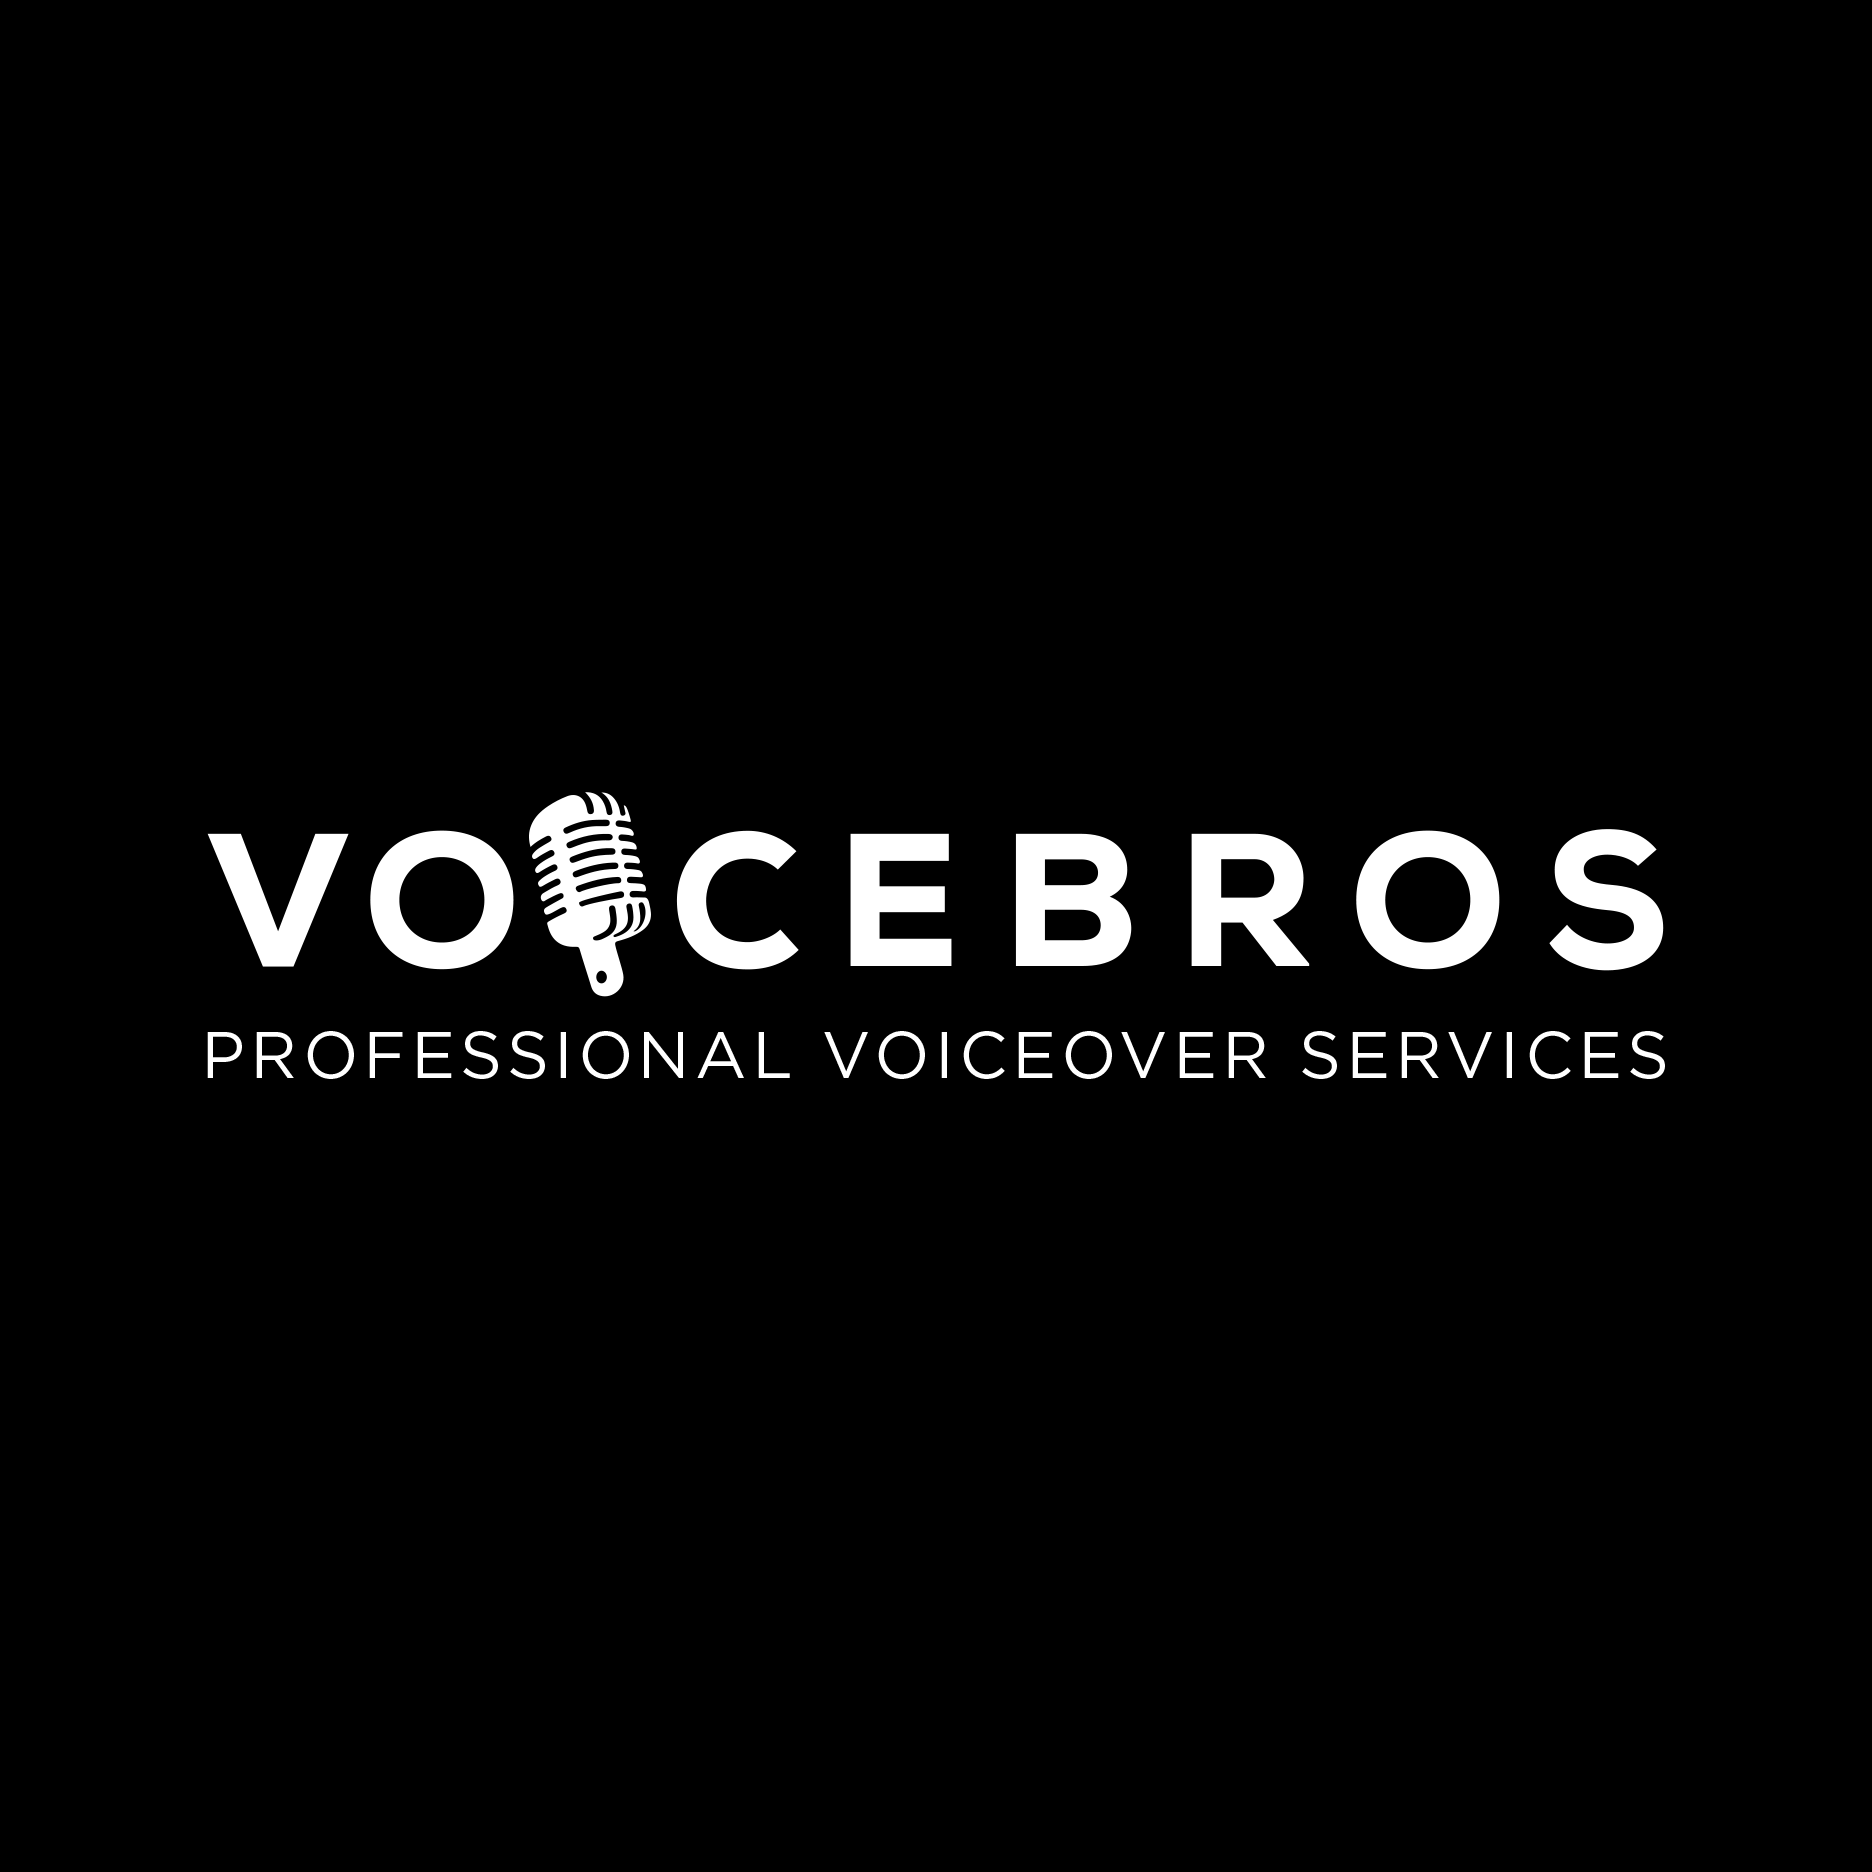 Marshall James Lee is a voice over actor